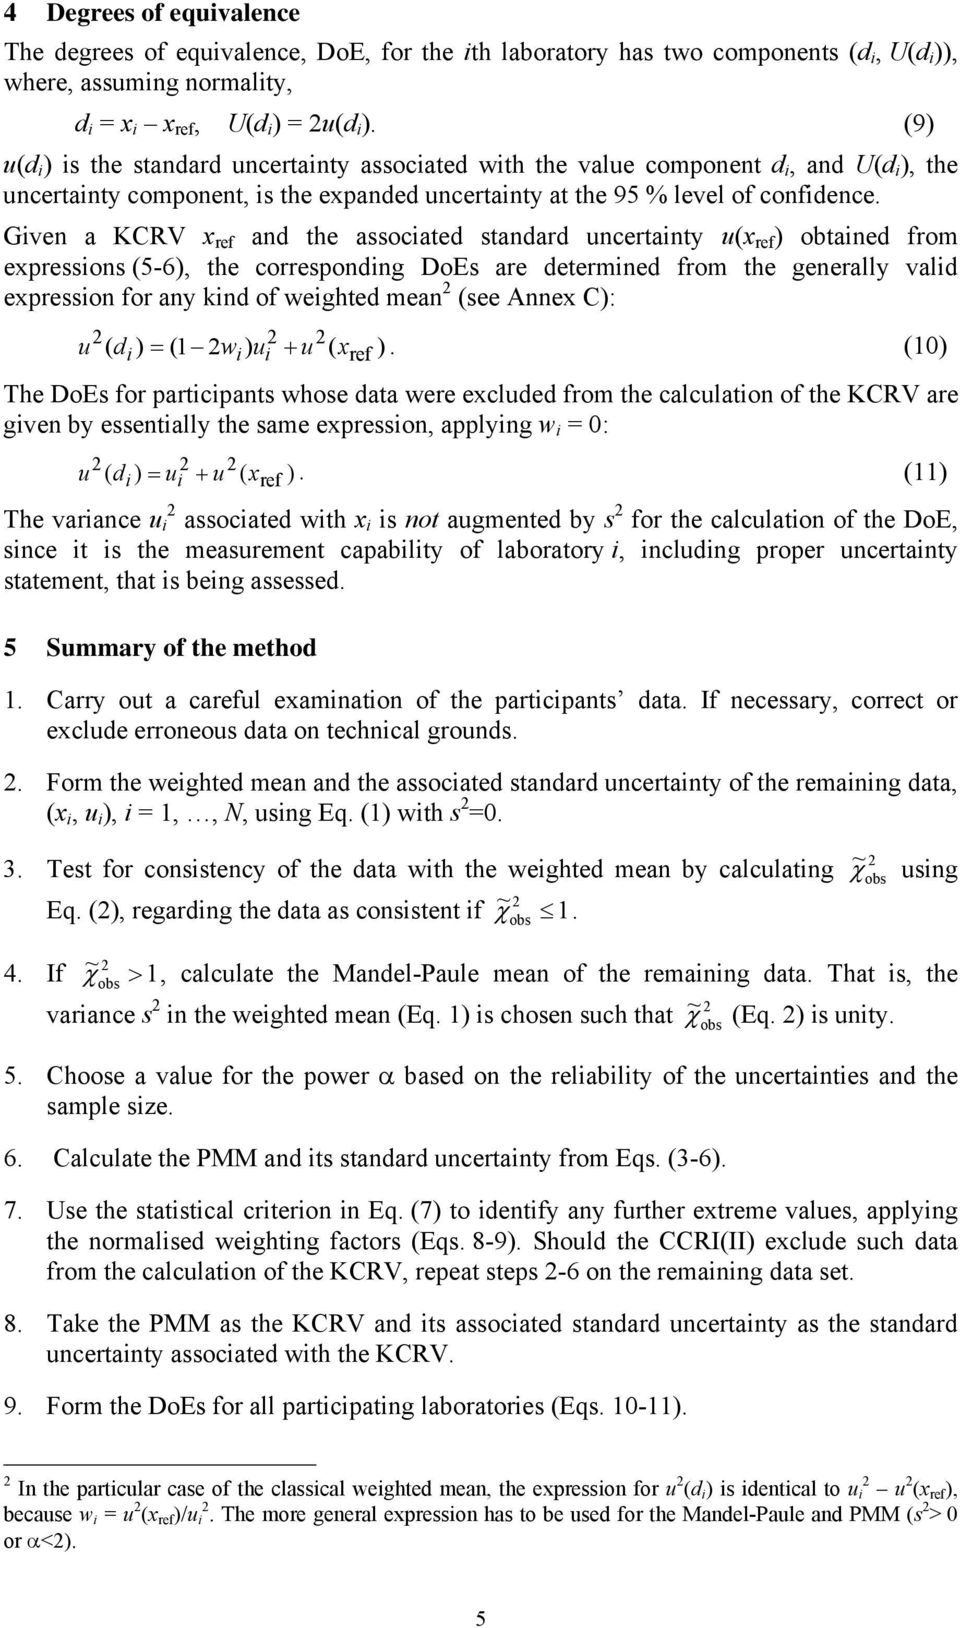 Gven a KCRV x and the assocated standard uncertanty u(x obtaned from expressons (5-6, the correspondng DoEs are determned from the generally vald expresson for any knd of weghted mean (see Annex C: u